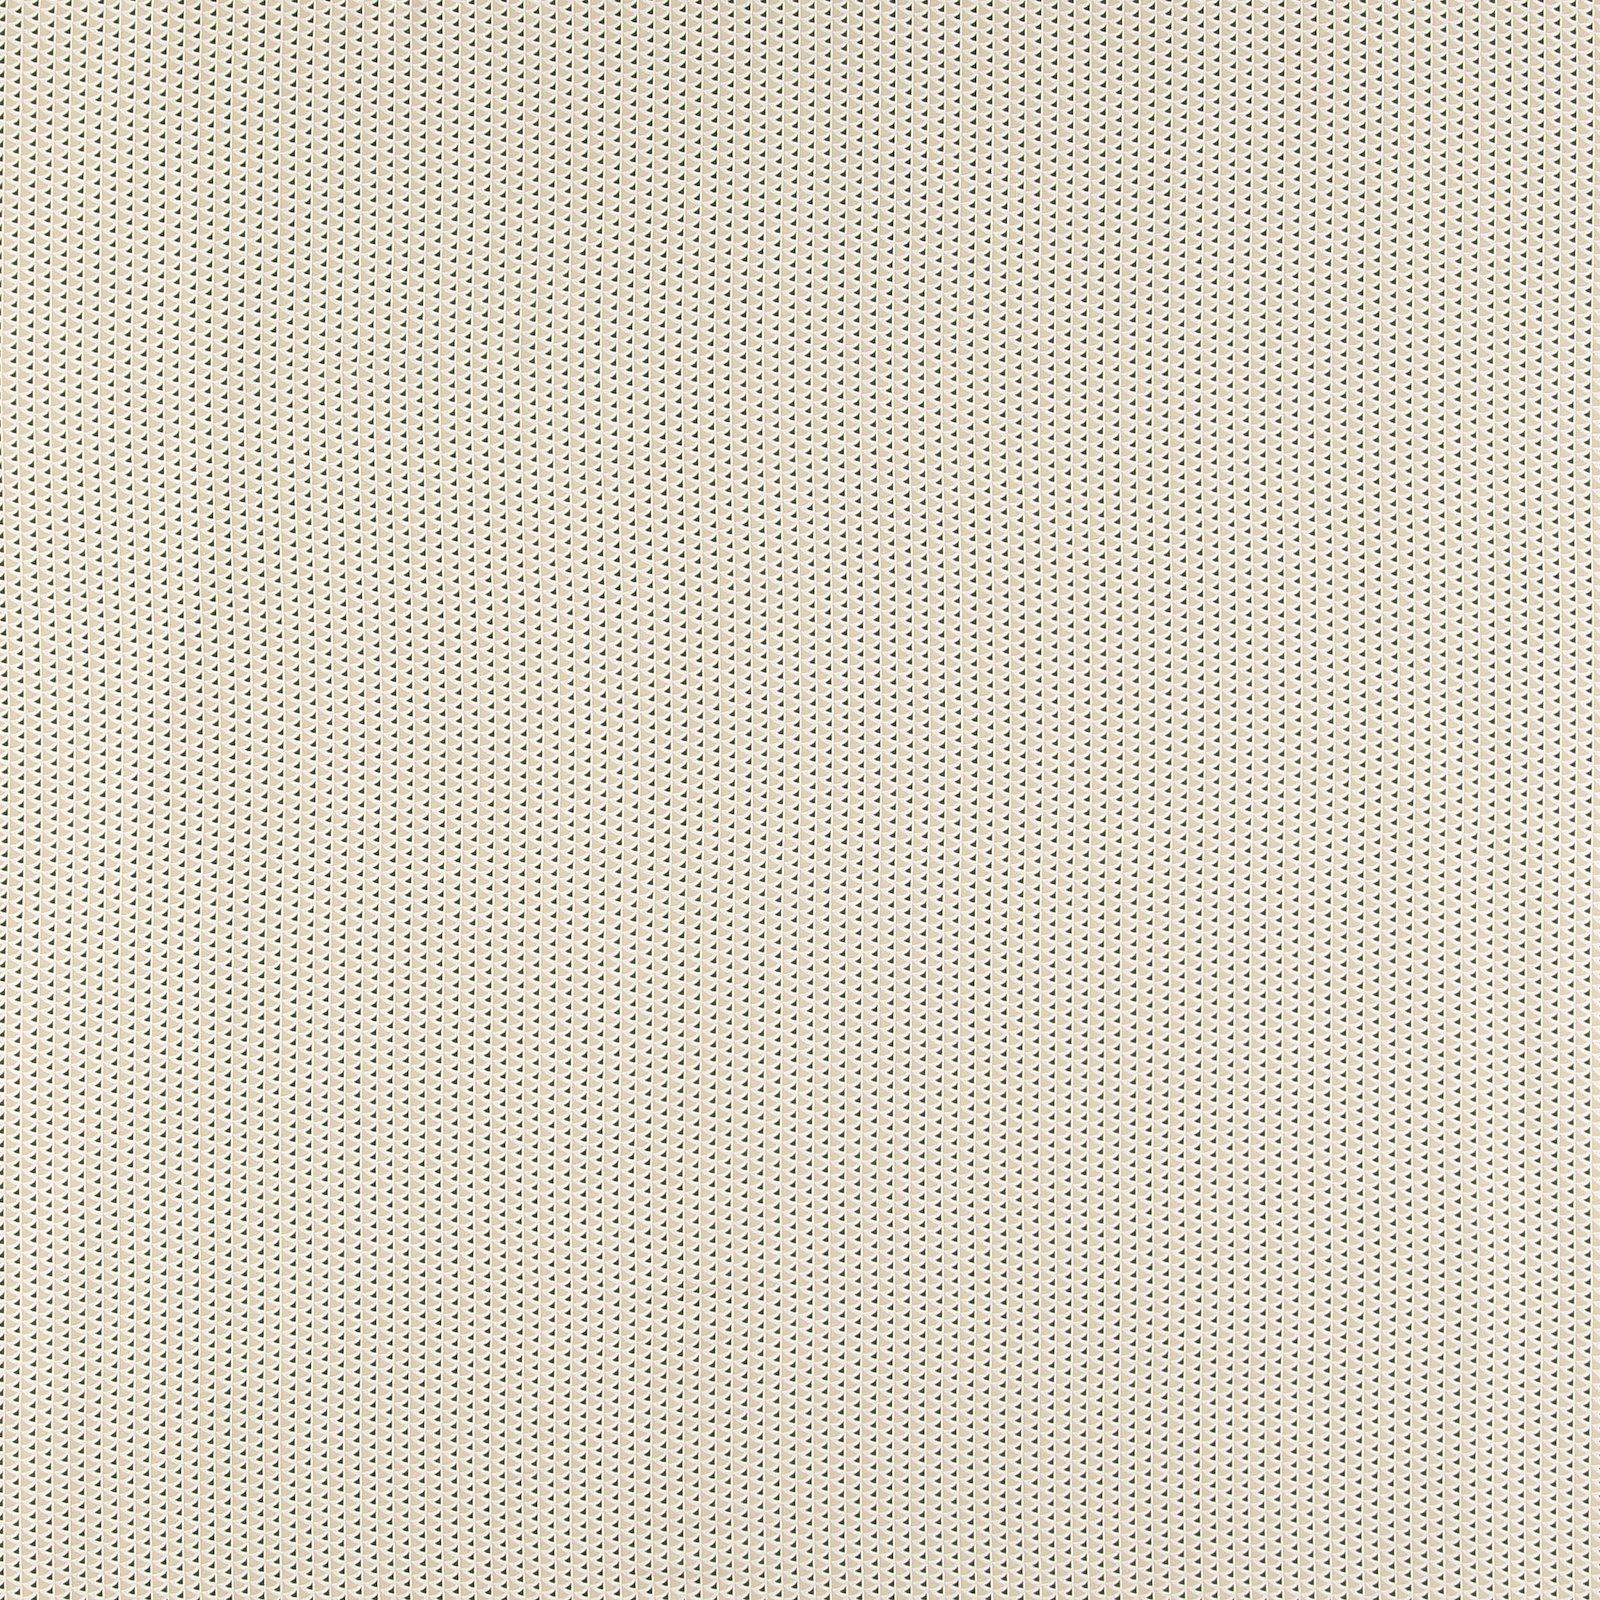 Ecovero woven viscose sand graphic print 710692_pack_sp